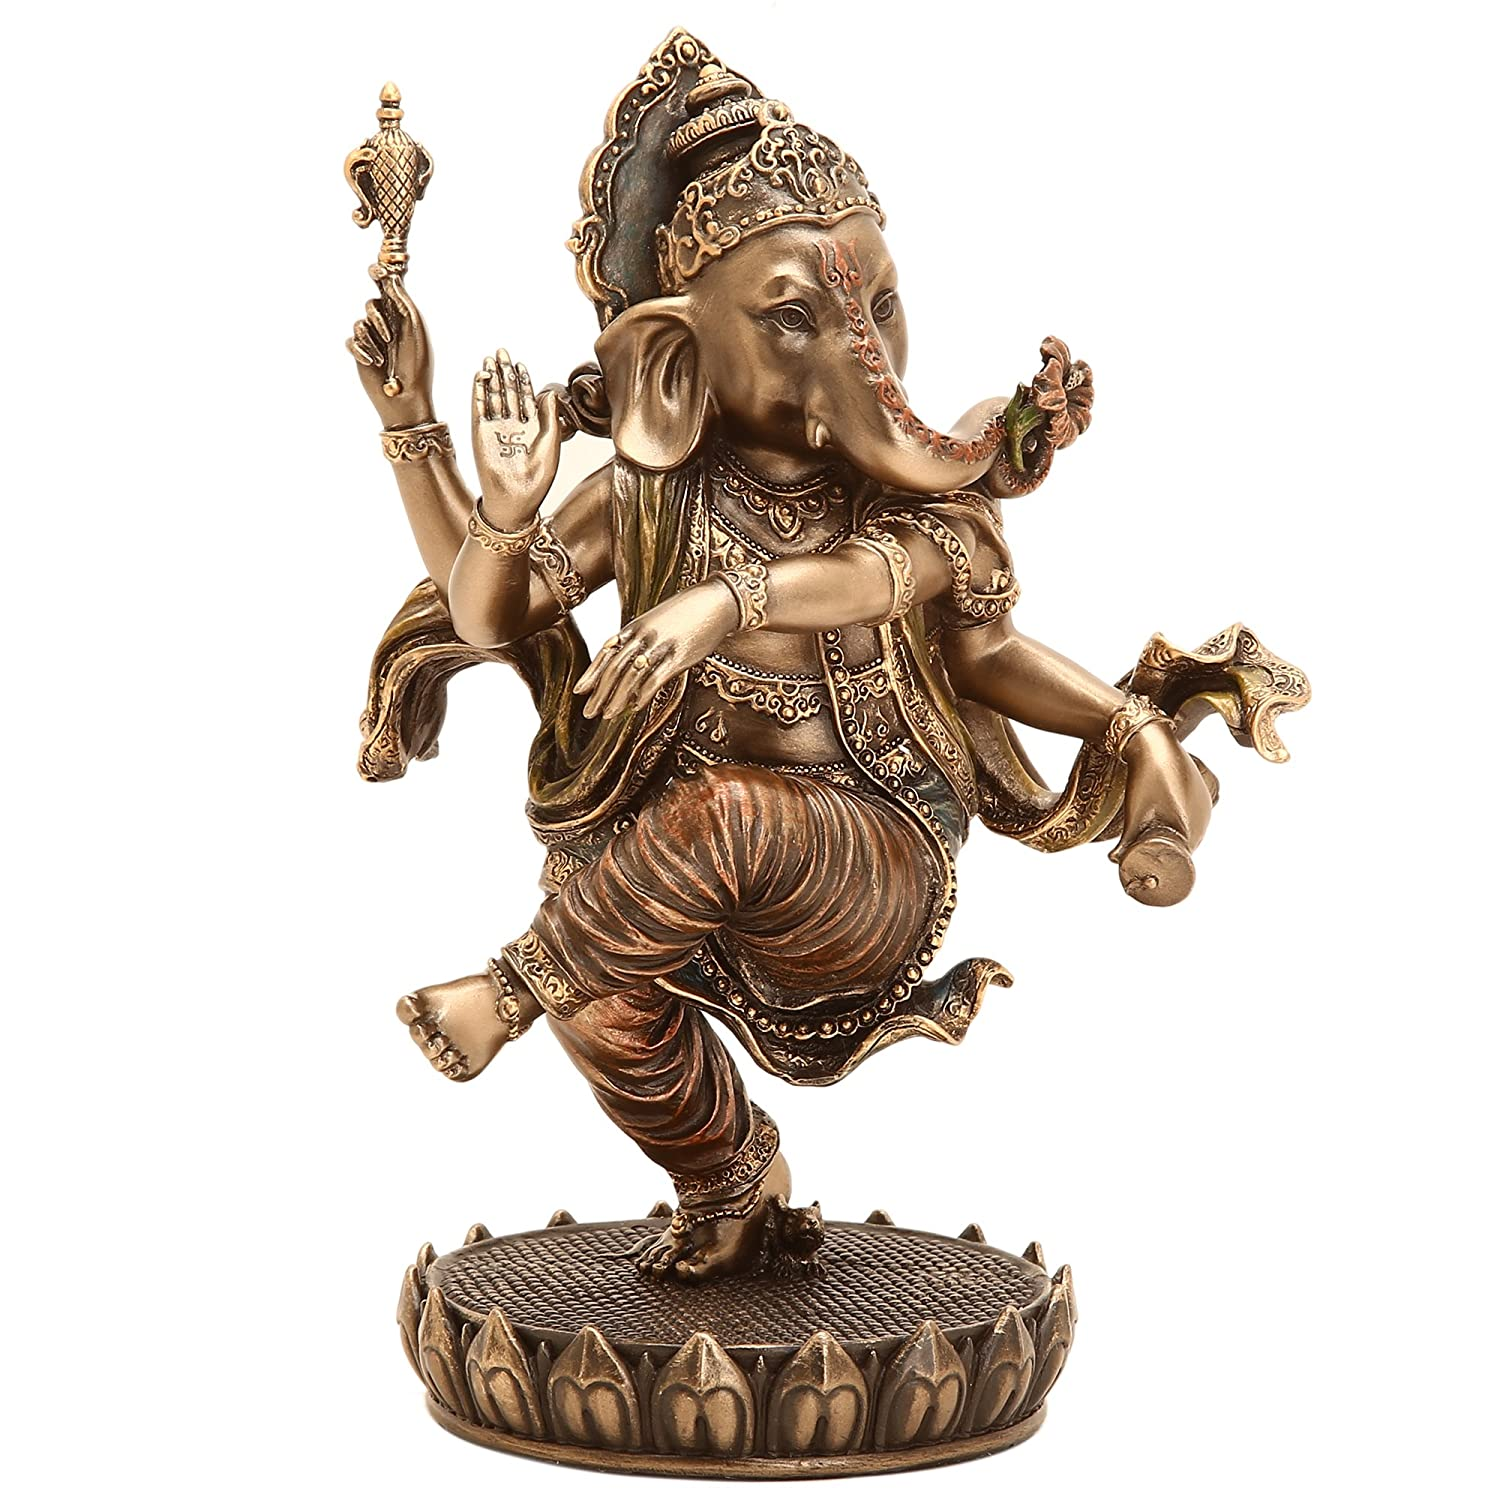 Buy SHIVIKA Bonded Bronze Lord Ganesha Statue Gajanana Figurine Ganpati Son  of Lord Shiva Parvati Idol for House Décor/Gifts/Diwali Gifts/House Warming  Gift Online at Low Prices in India - Amazon.in